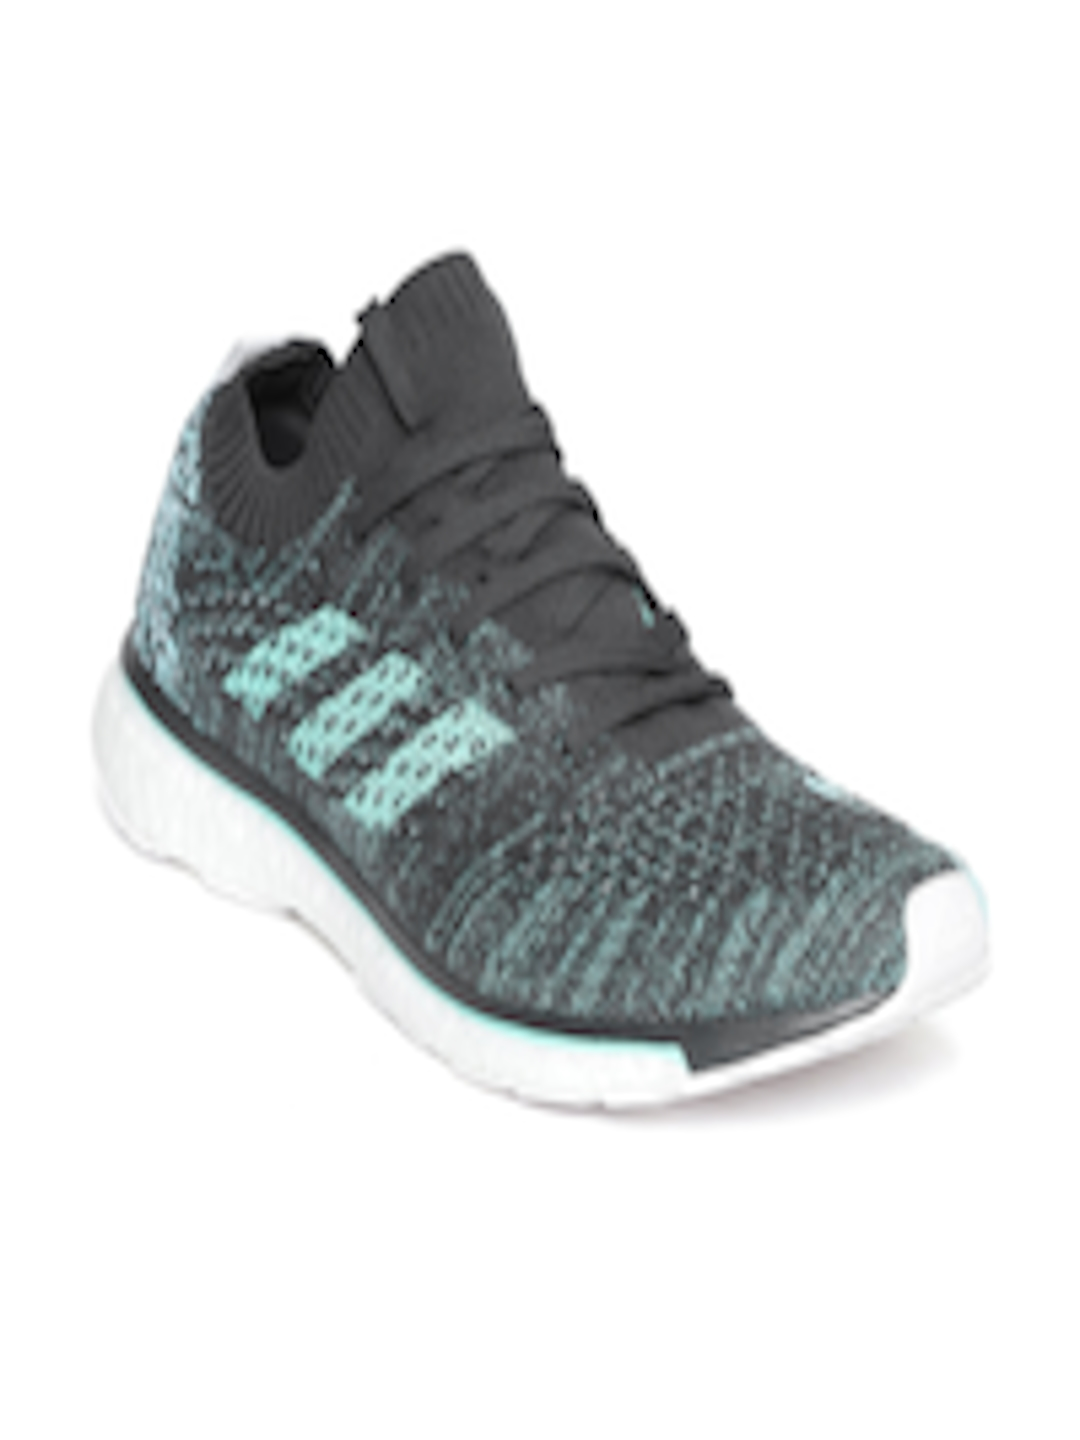 sports shoes ea344 e556f Buy ADIDAS Unisex Charcoal Grey  Blue Adizero Prime Parley Running Shoes -  Sports Shoes for Unisex 4319683  Myntra